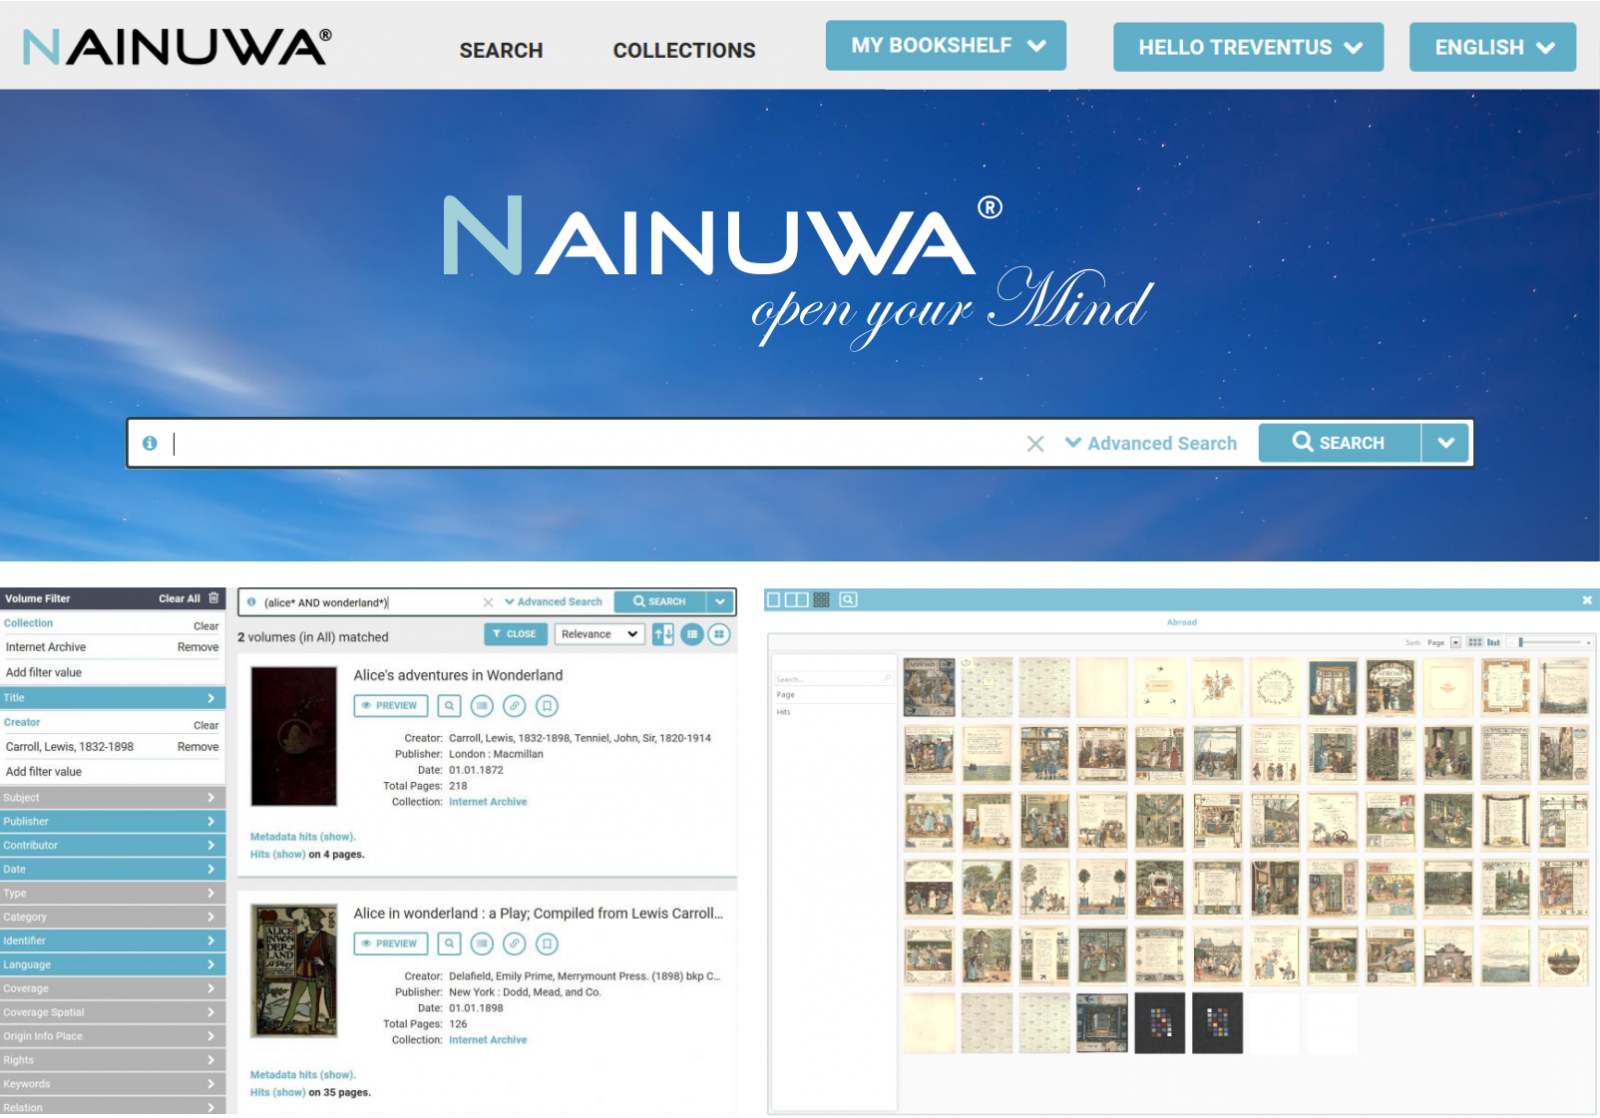 Nainuwa digital archive